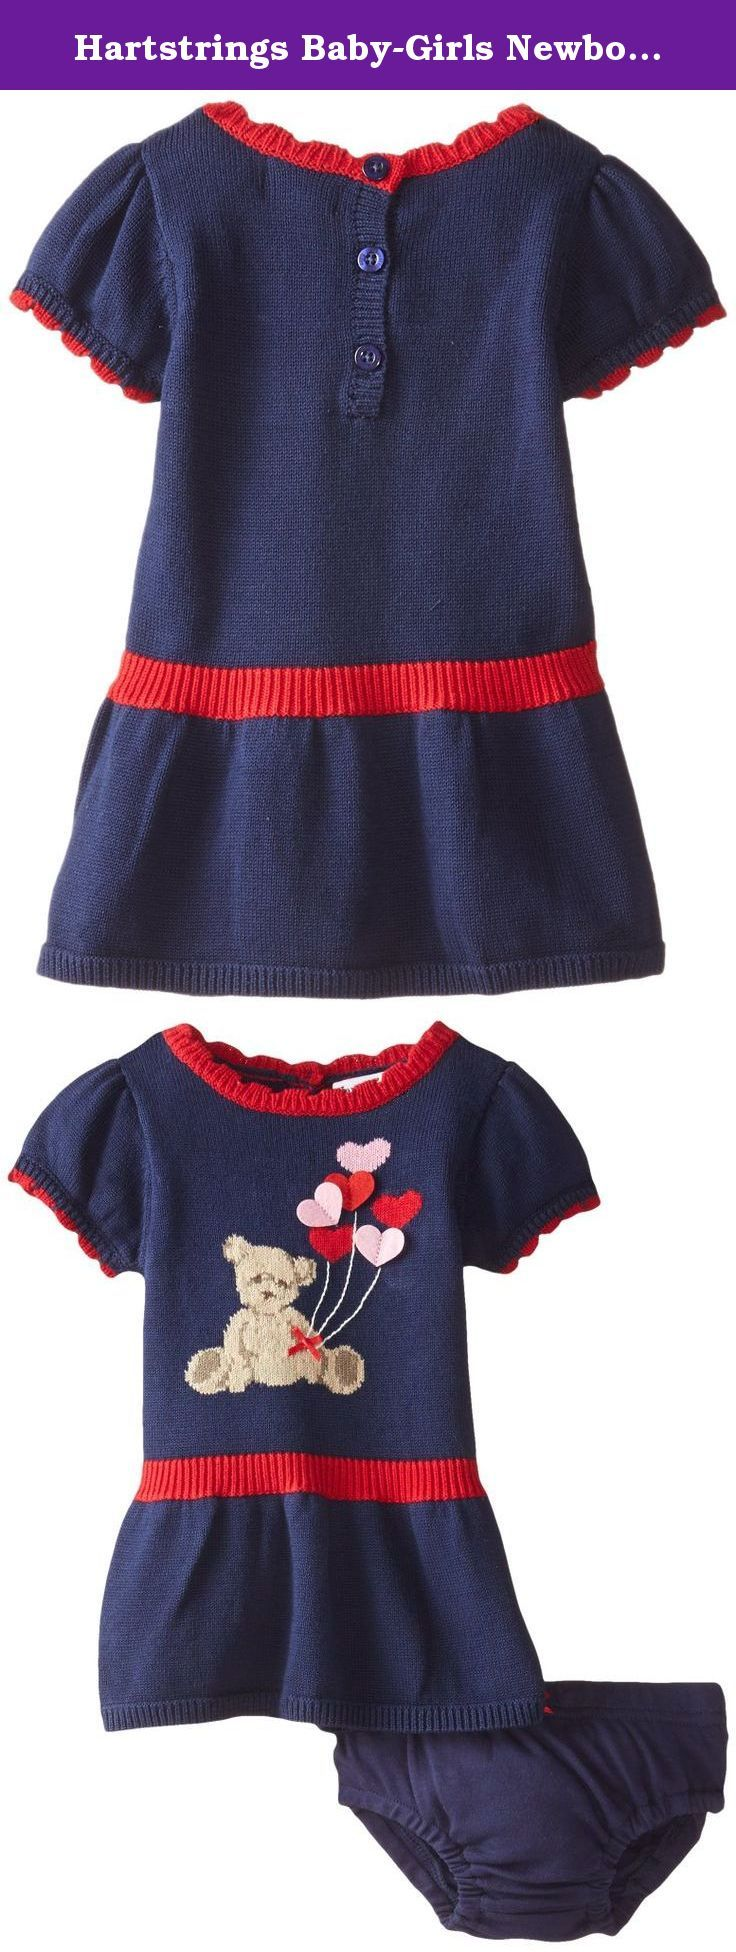 Hartstrings Baby-Girls Newborn Bear Sweater Dress and Panty Set, China Blue, 6-9 Months. Baby girls cotton sweater dress and diaper cover set.